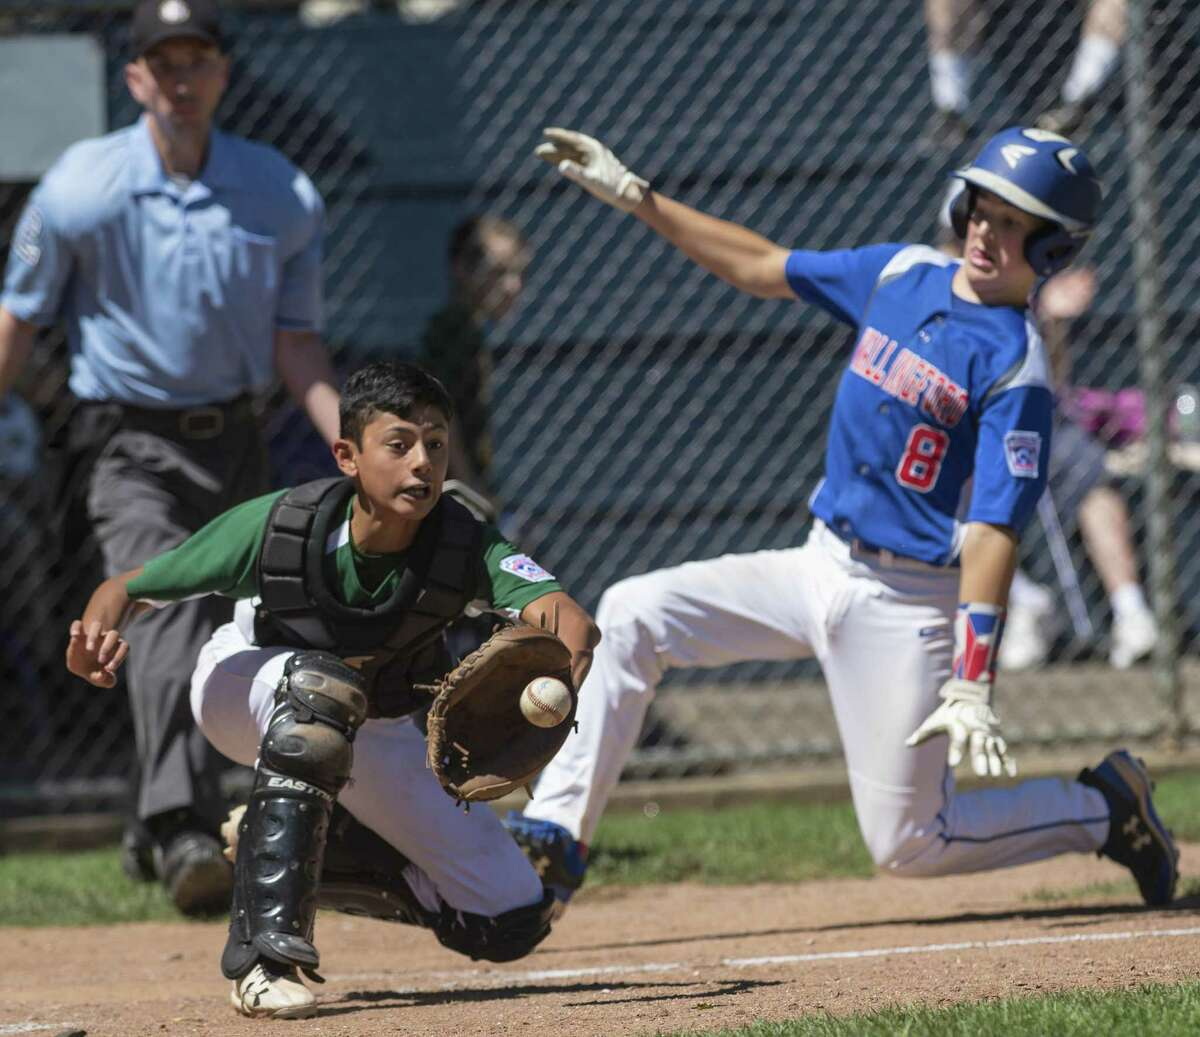 Wallingford?'s Jacob Morrison slides safely into home as the Shelton American catcher Nicolas Piscioniere readys to catch the throw to home during the district 2 Little League championship game played at Peter J. Foley Field, Naugatuck, CT. Saturday, July 21 2018.